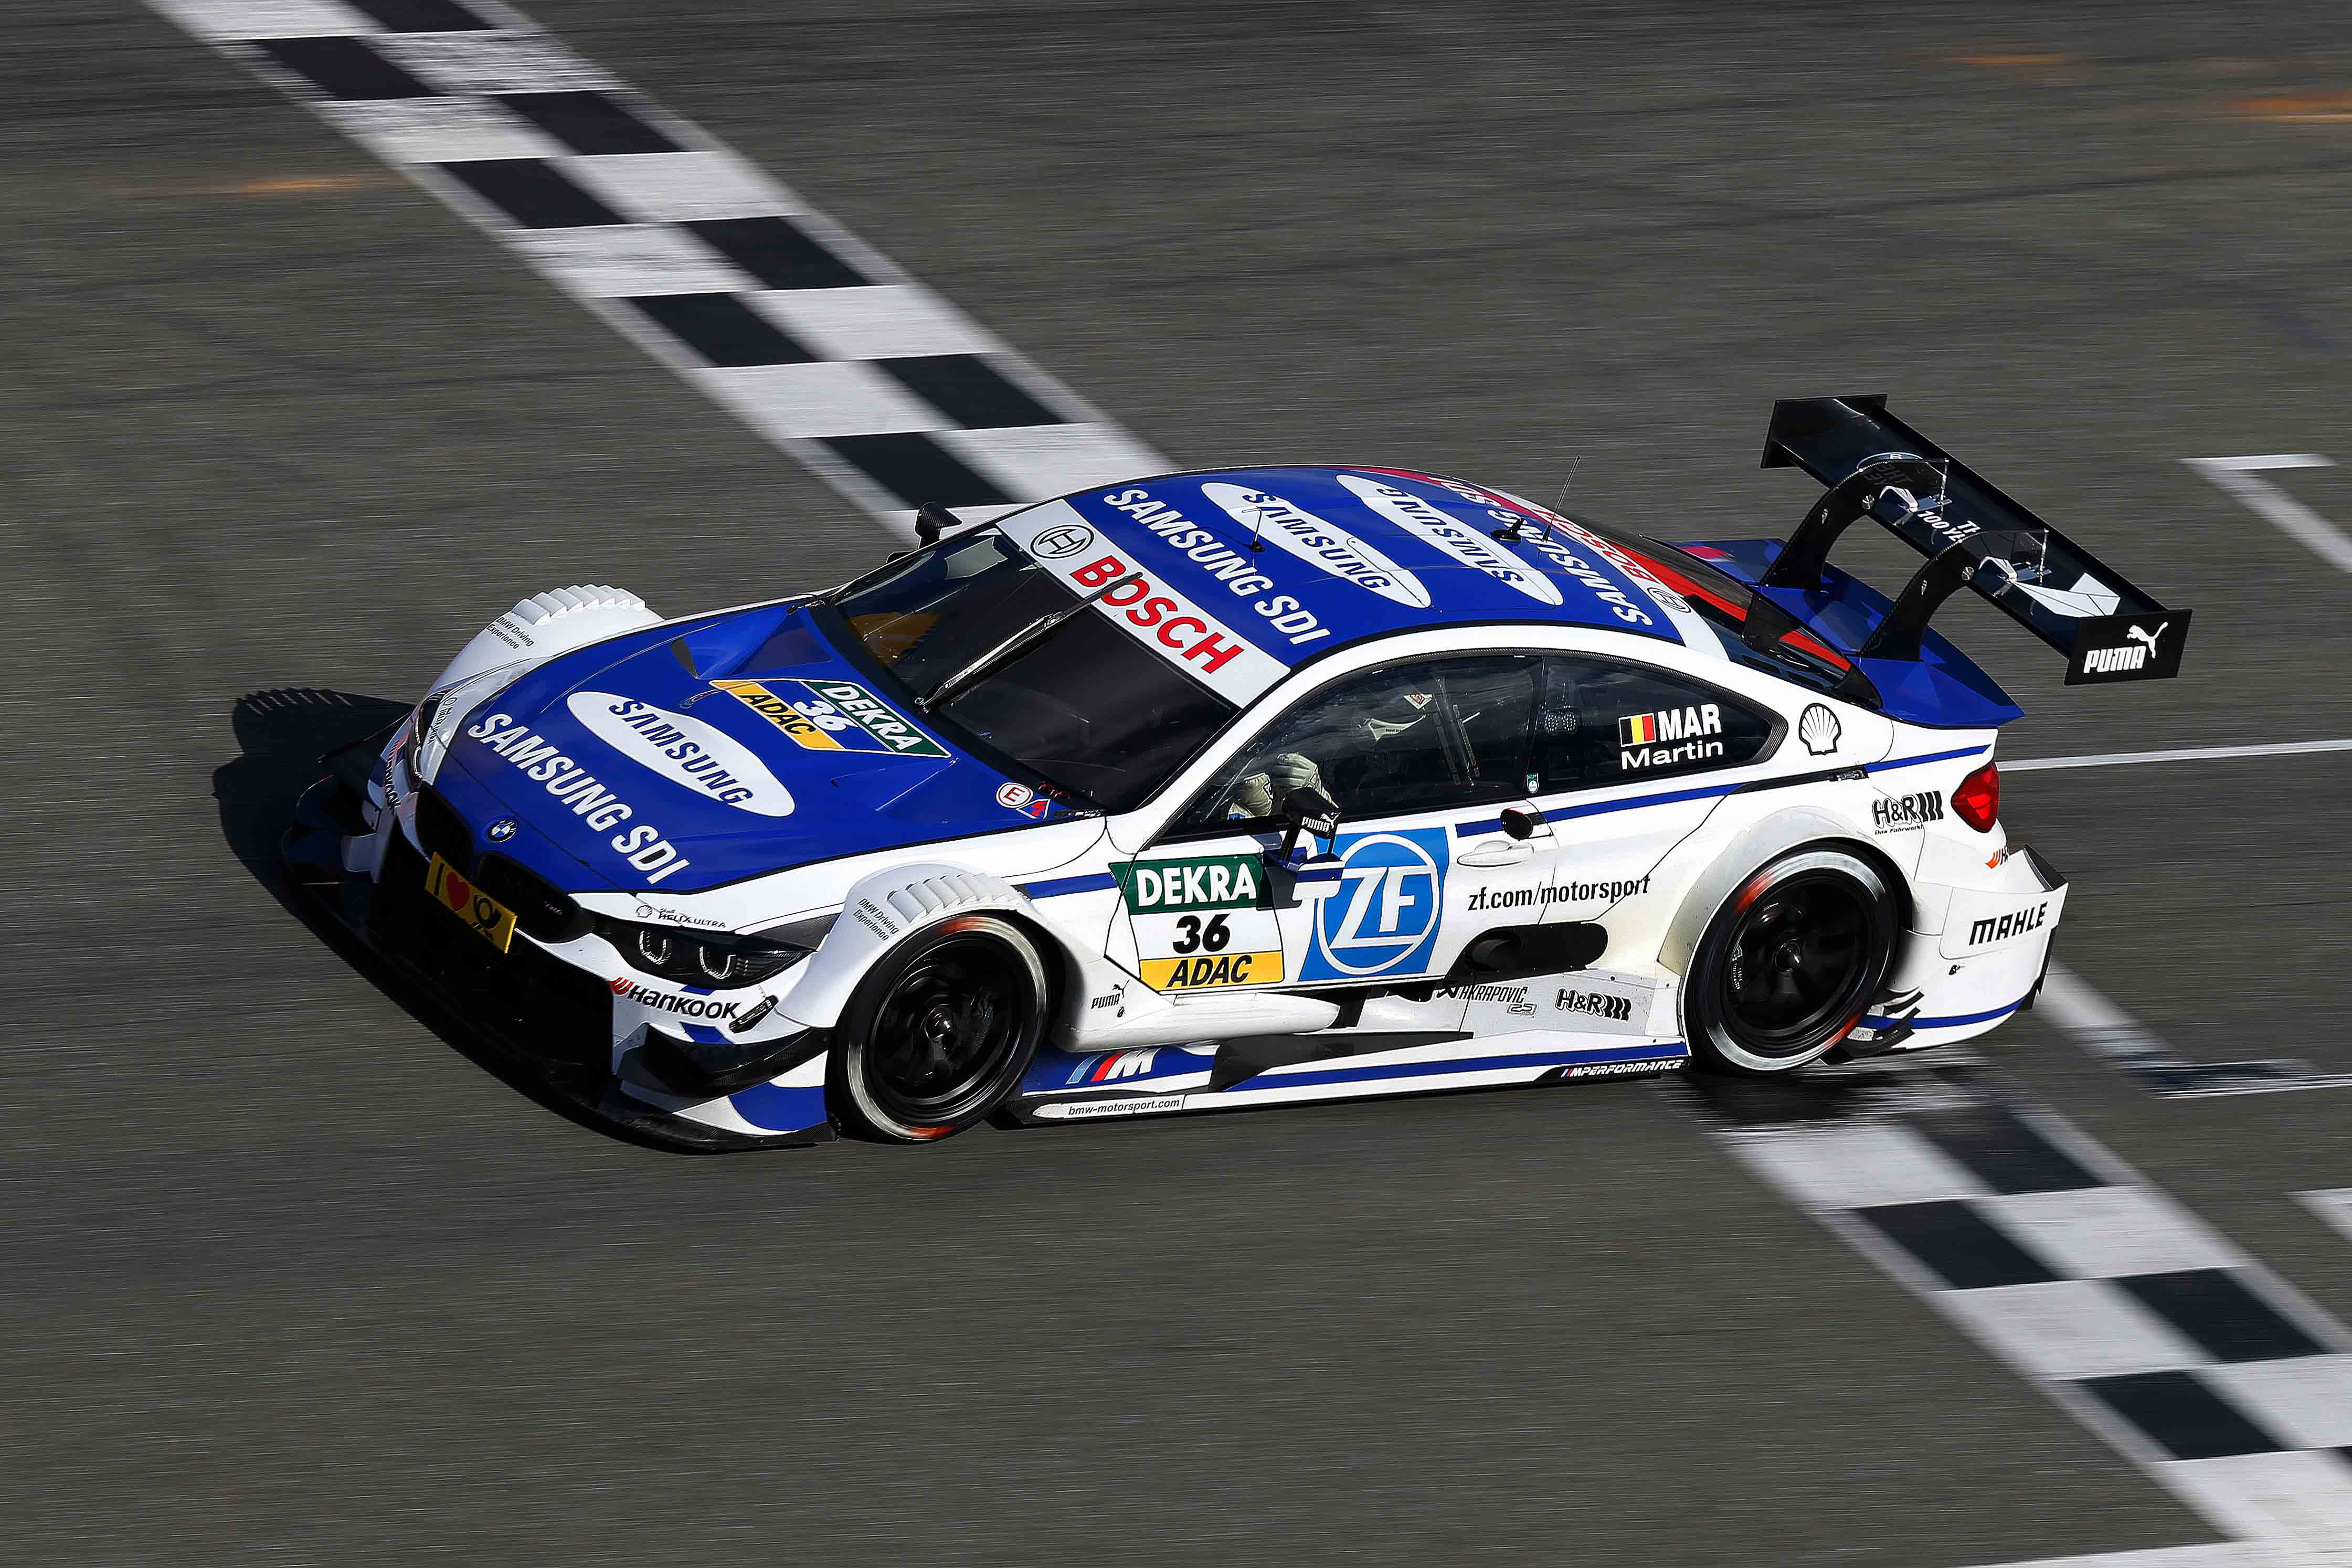 Dtm 2016 Regulations Include A Break For Bmw Bmw Car Club Of America